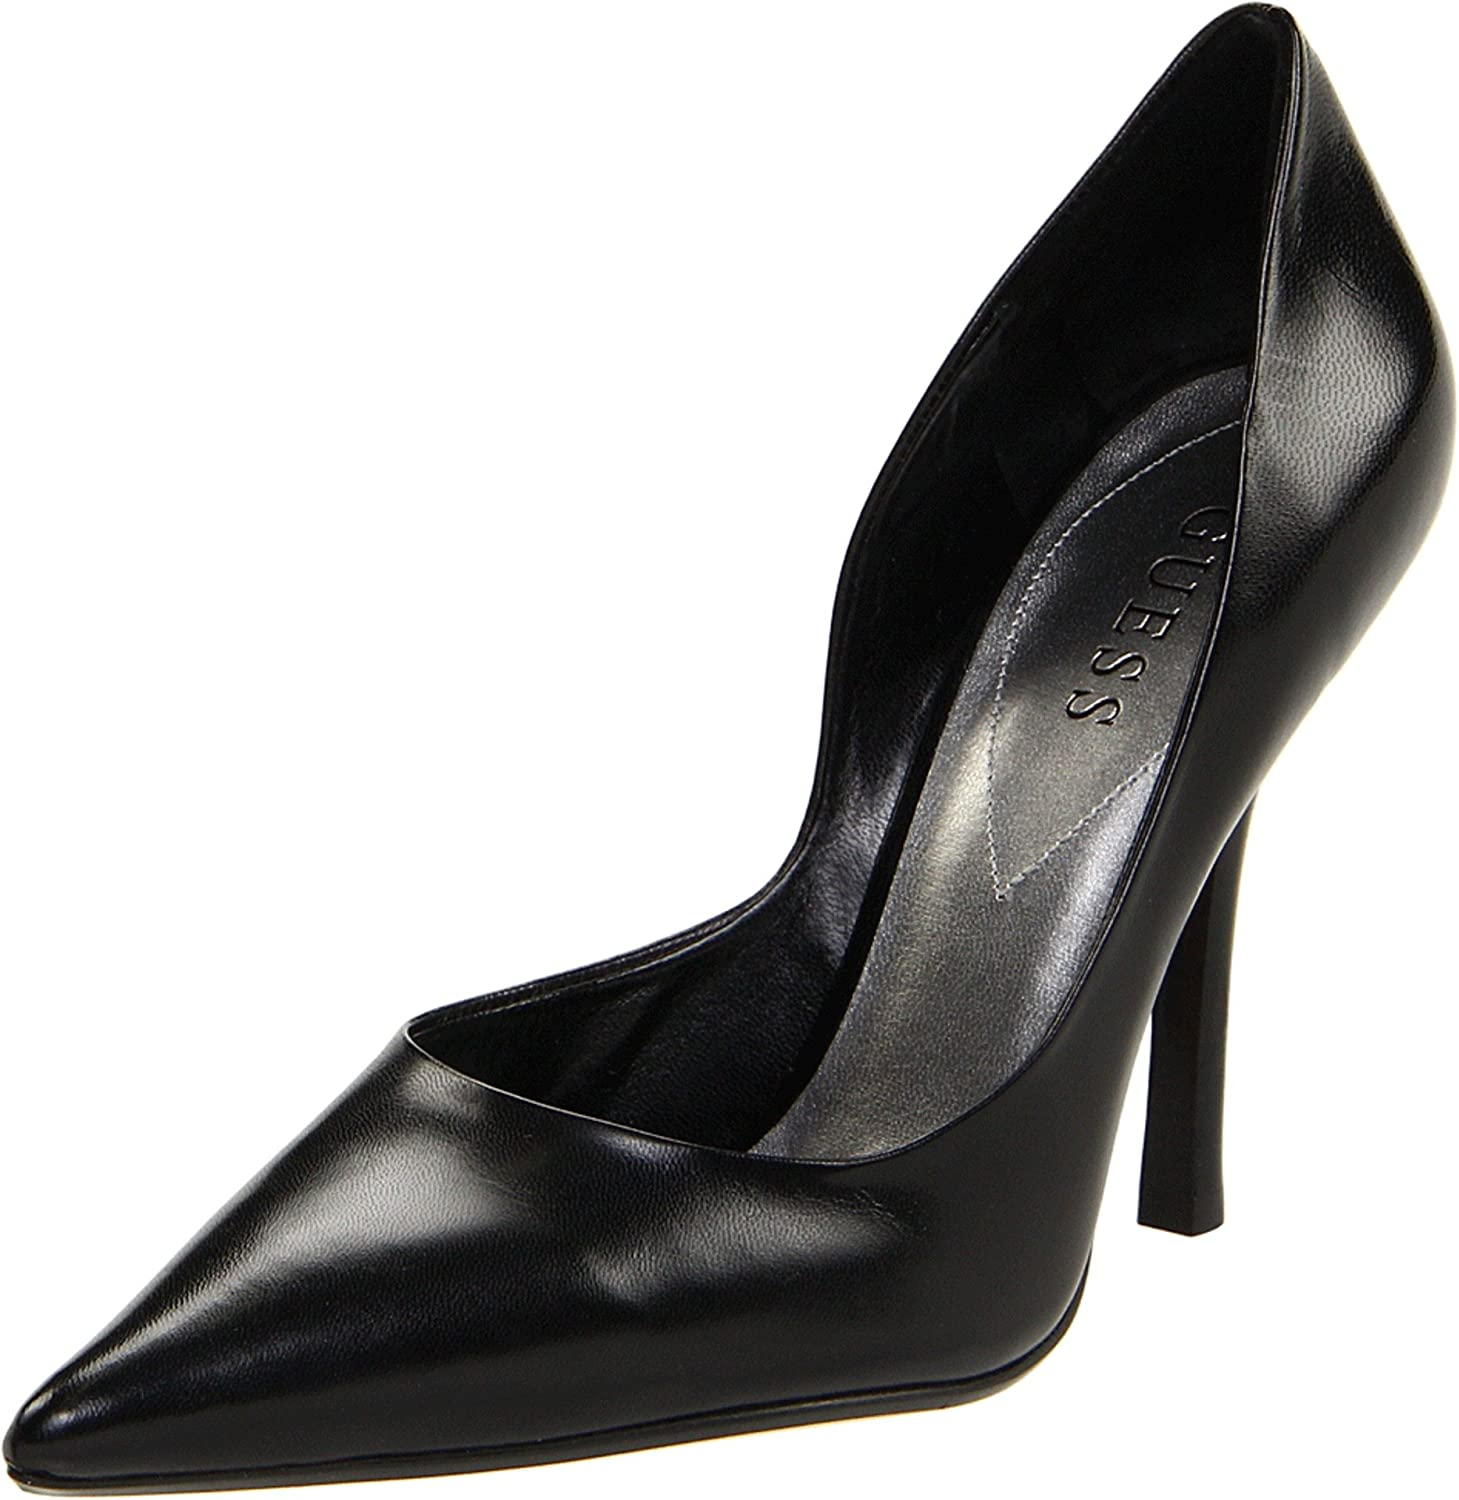 GUESS Women's Carrie Dress Pump